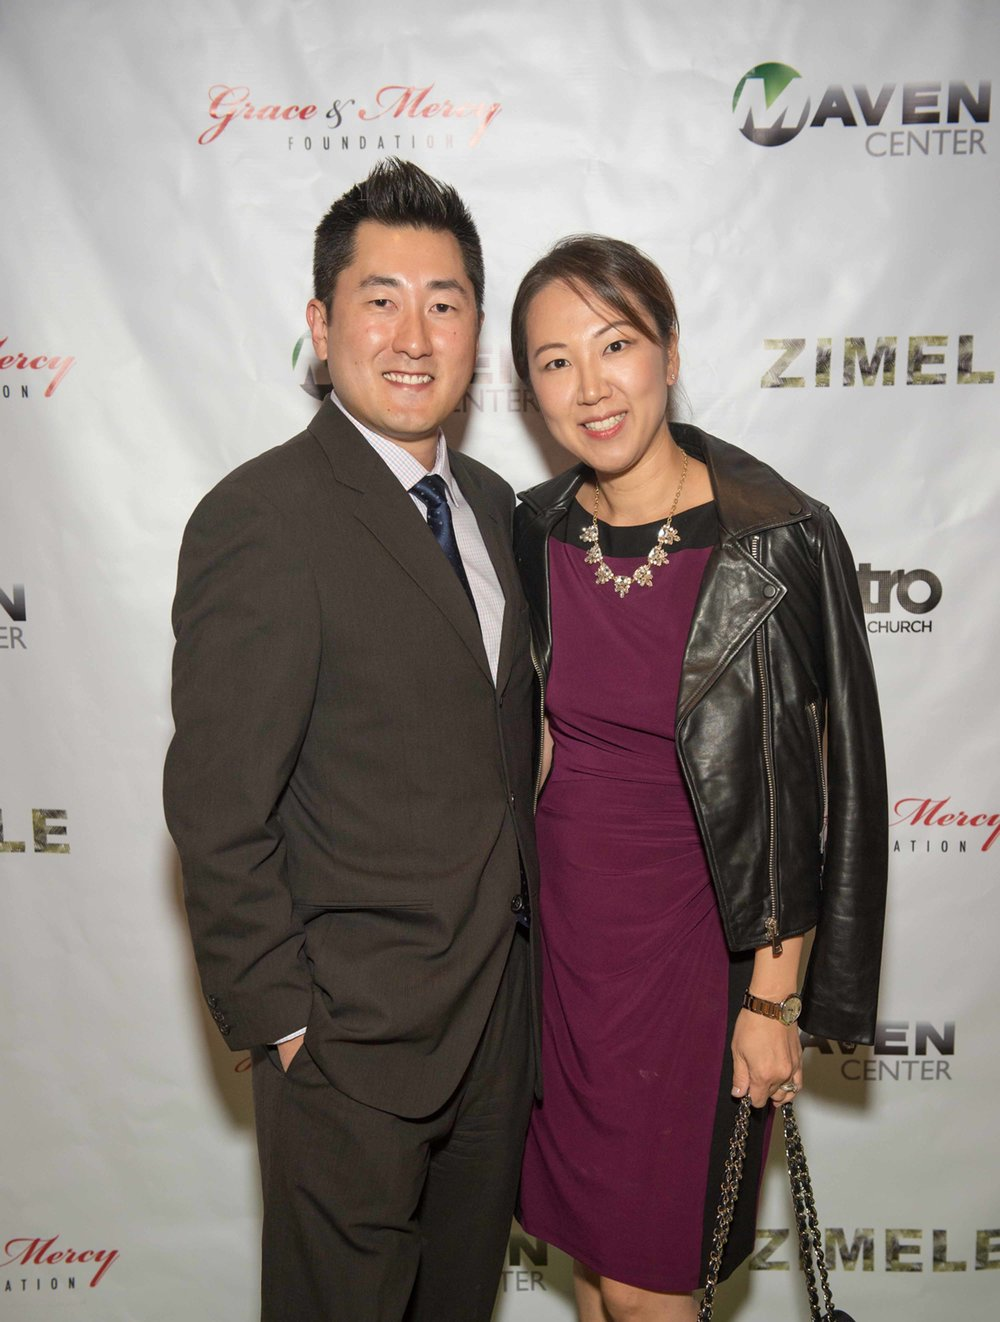 2017-10-21 Zimele USA 6th Annual Gala - Maritime Parc - Jersey City NJ_0021.jpg